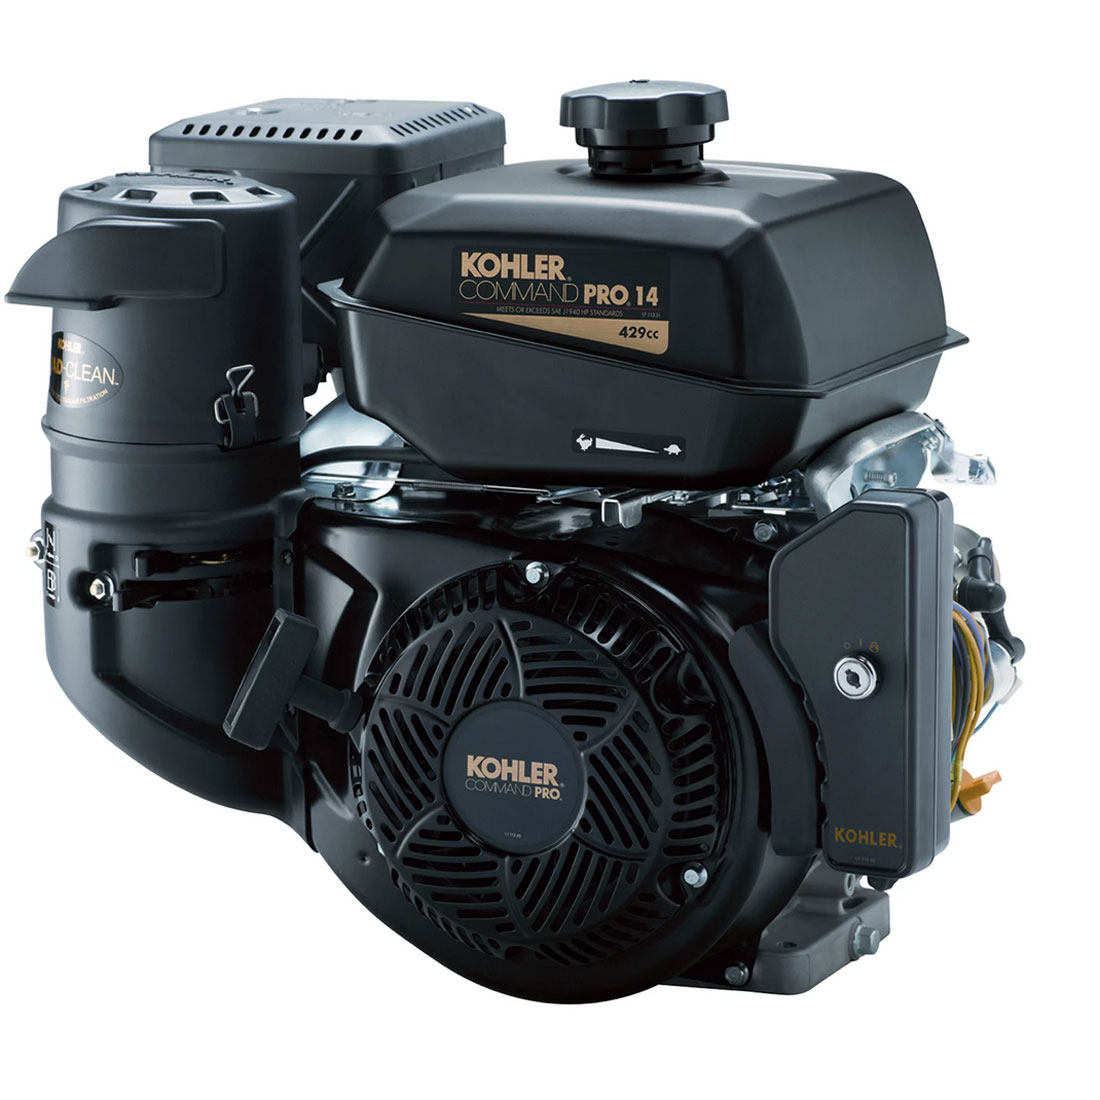 Kohler PA-CH440-3031 Command Pro Horizontal Electric Start Engine — 429cc, 1in. x 3.49in. Shaft, Model# 13937